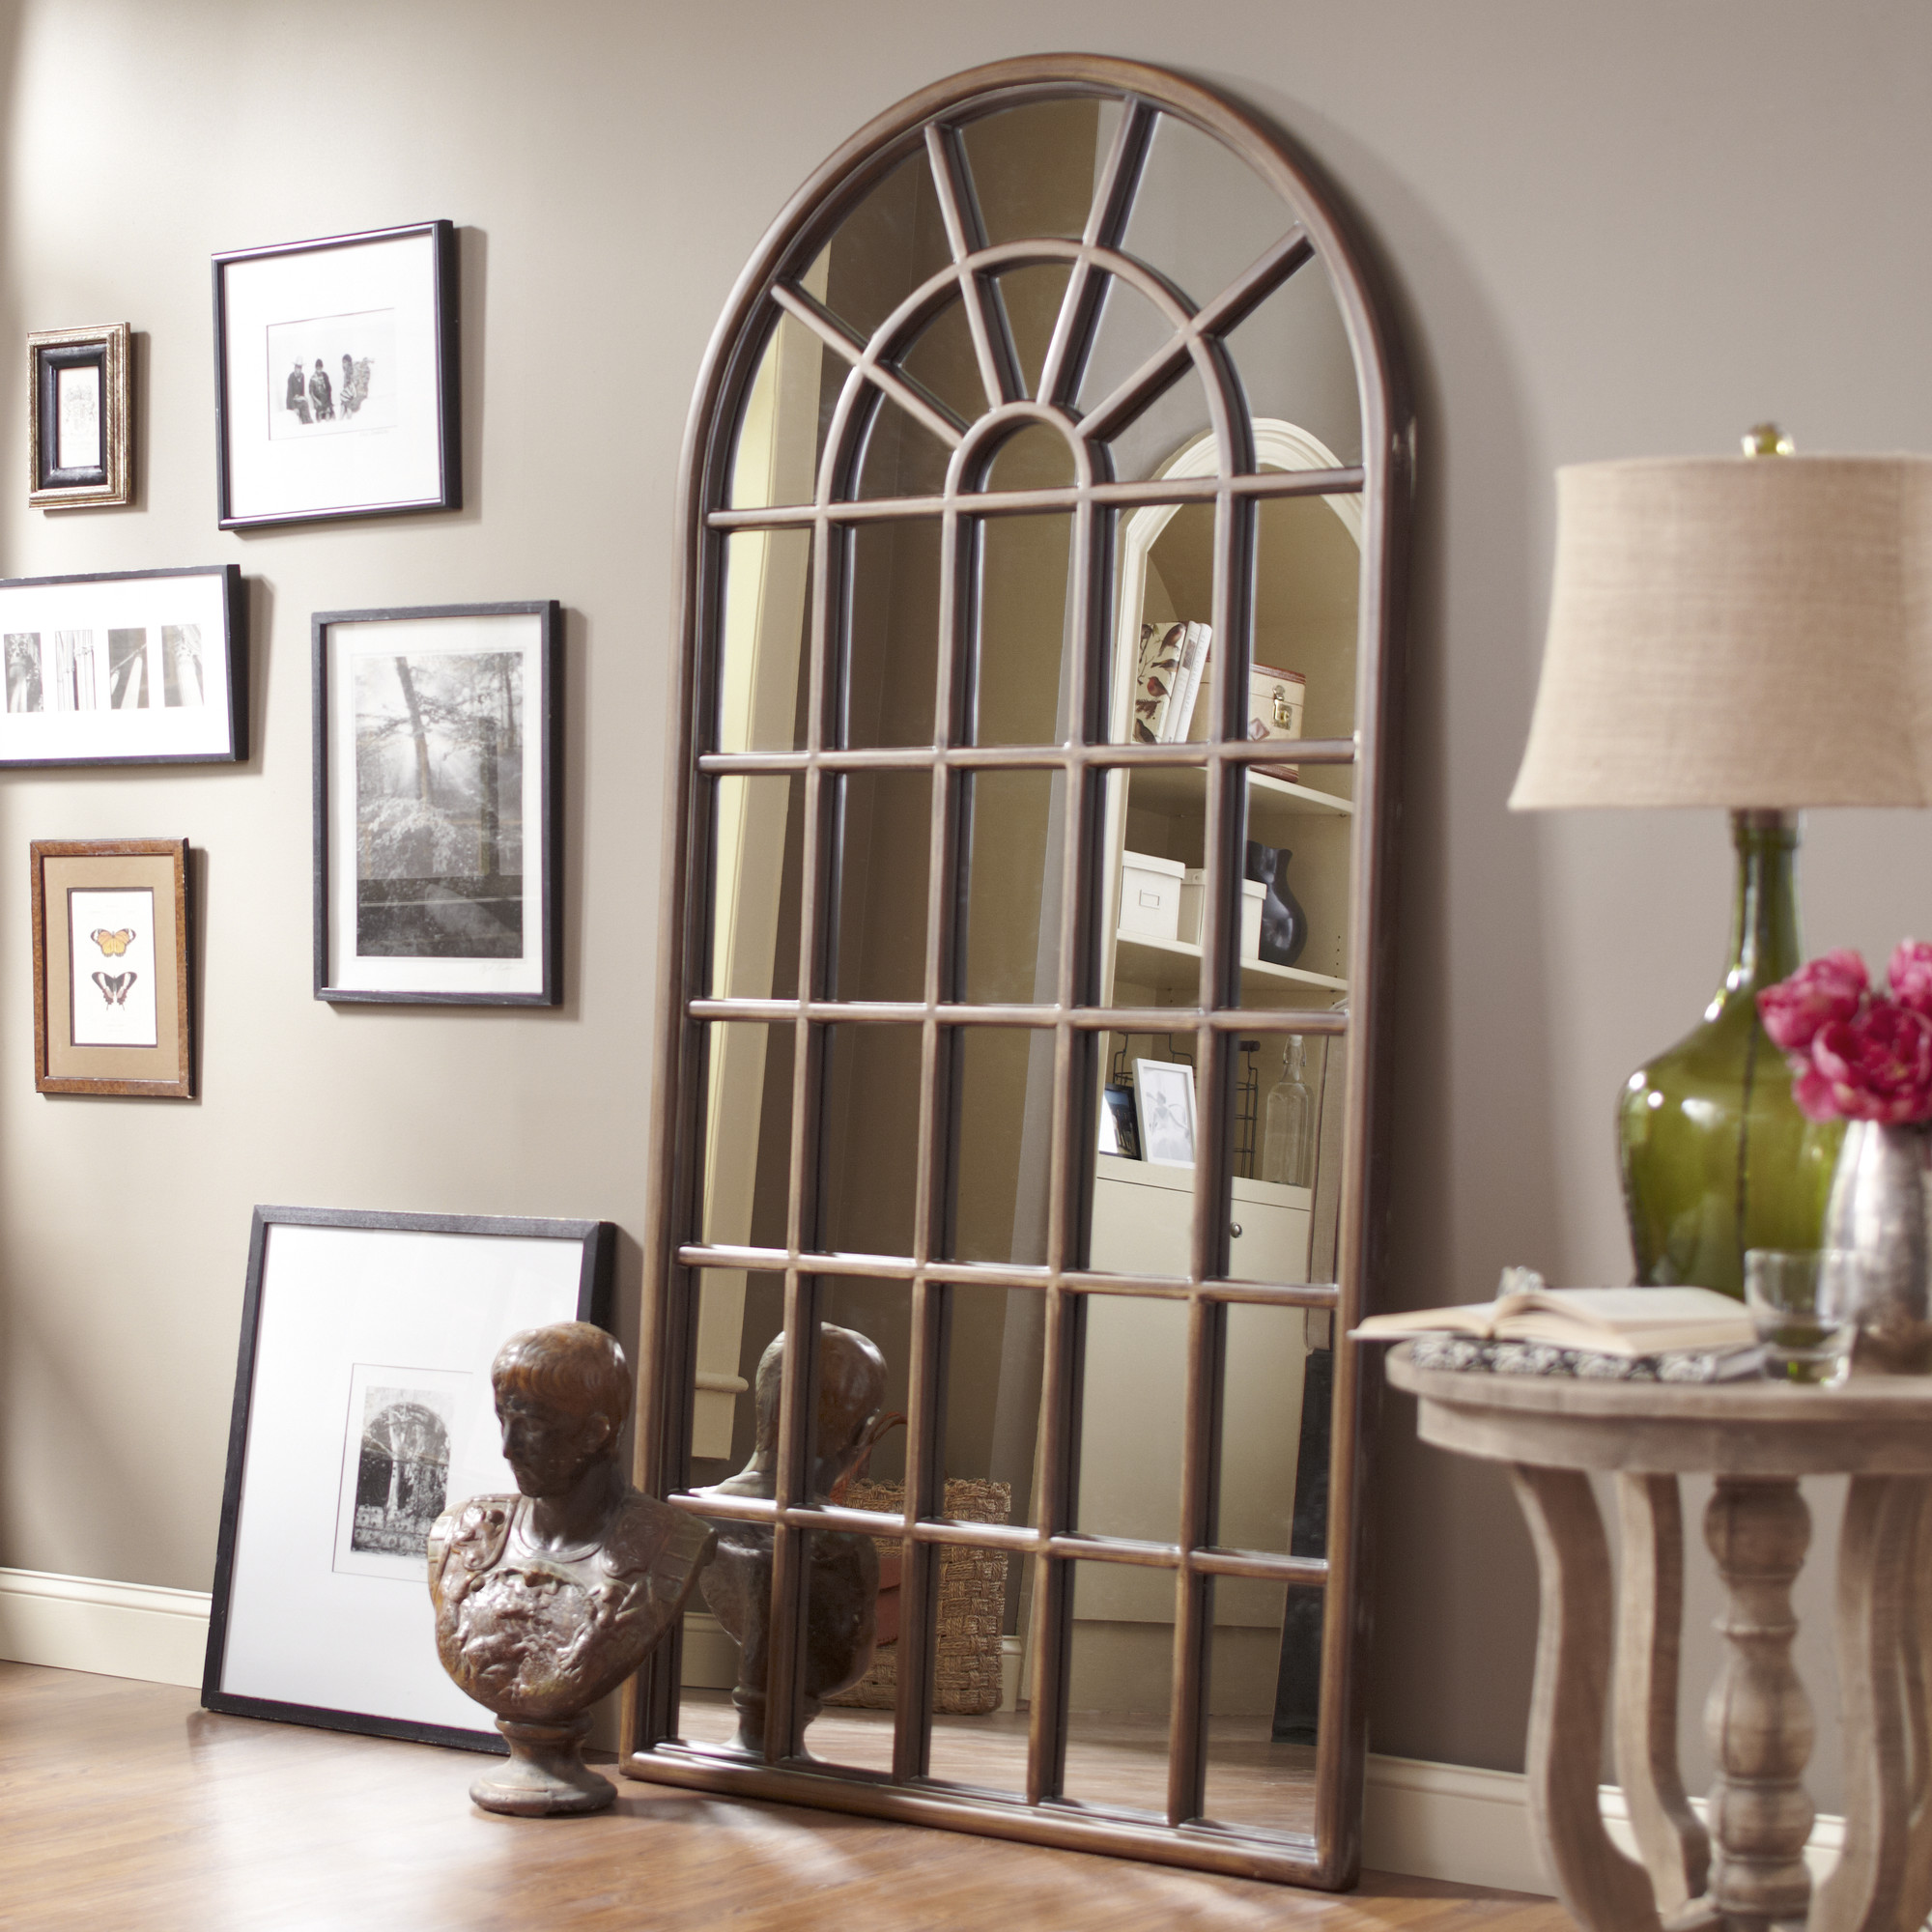 Restoration Hardware Palladian Mirror Decor Look Alikes